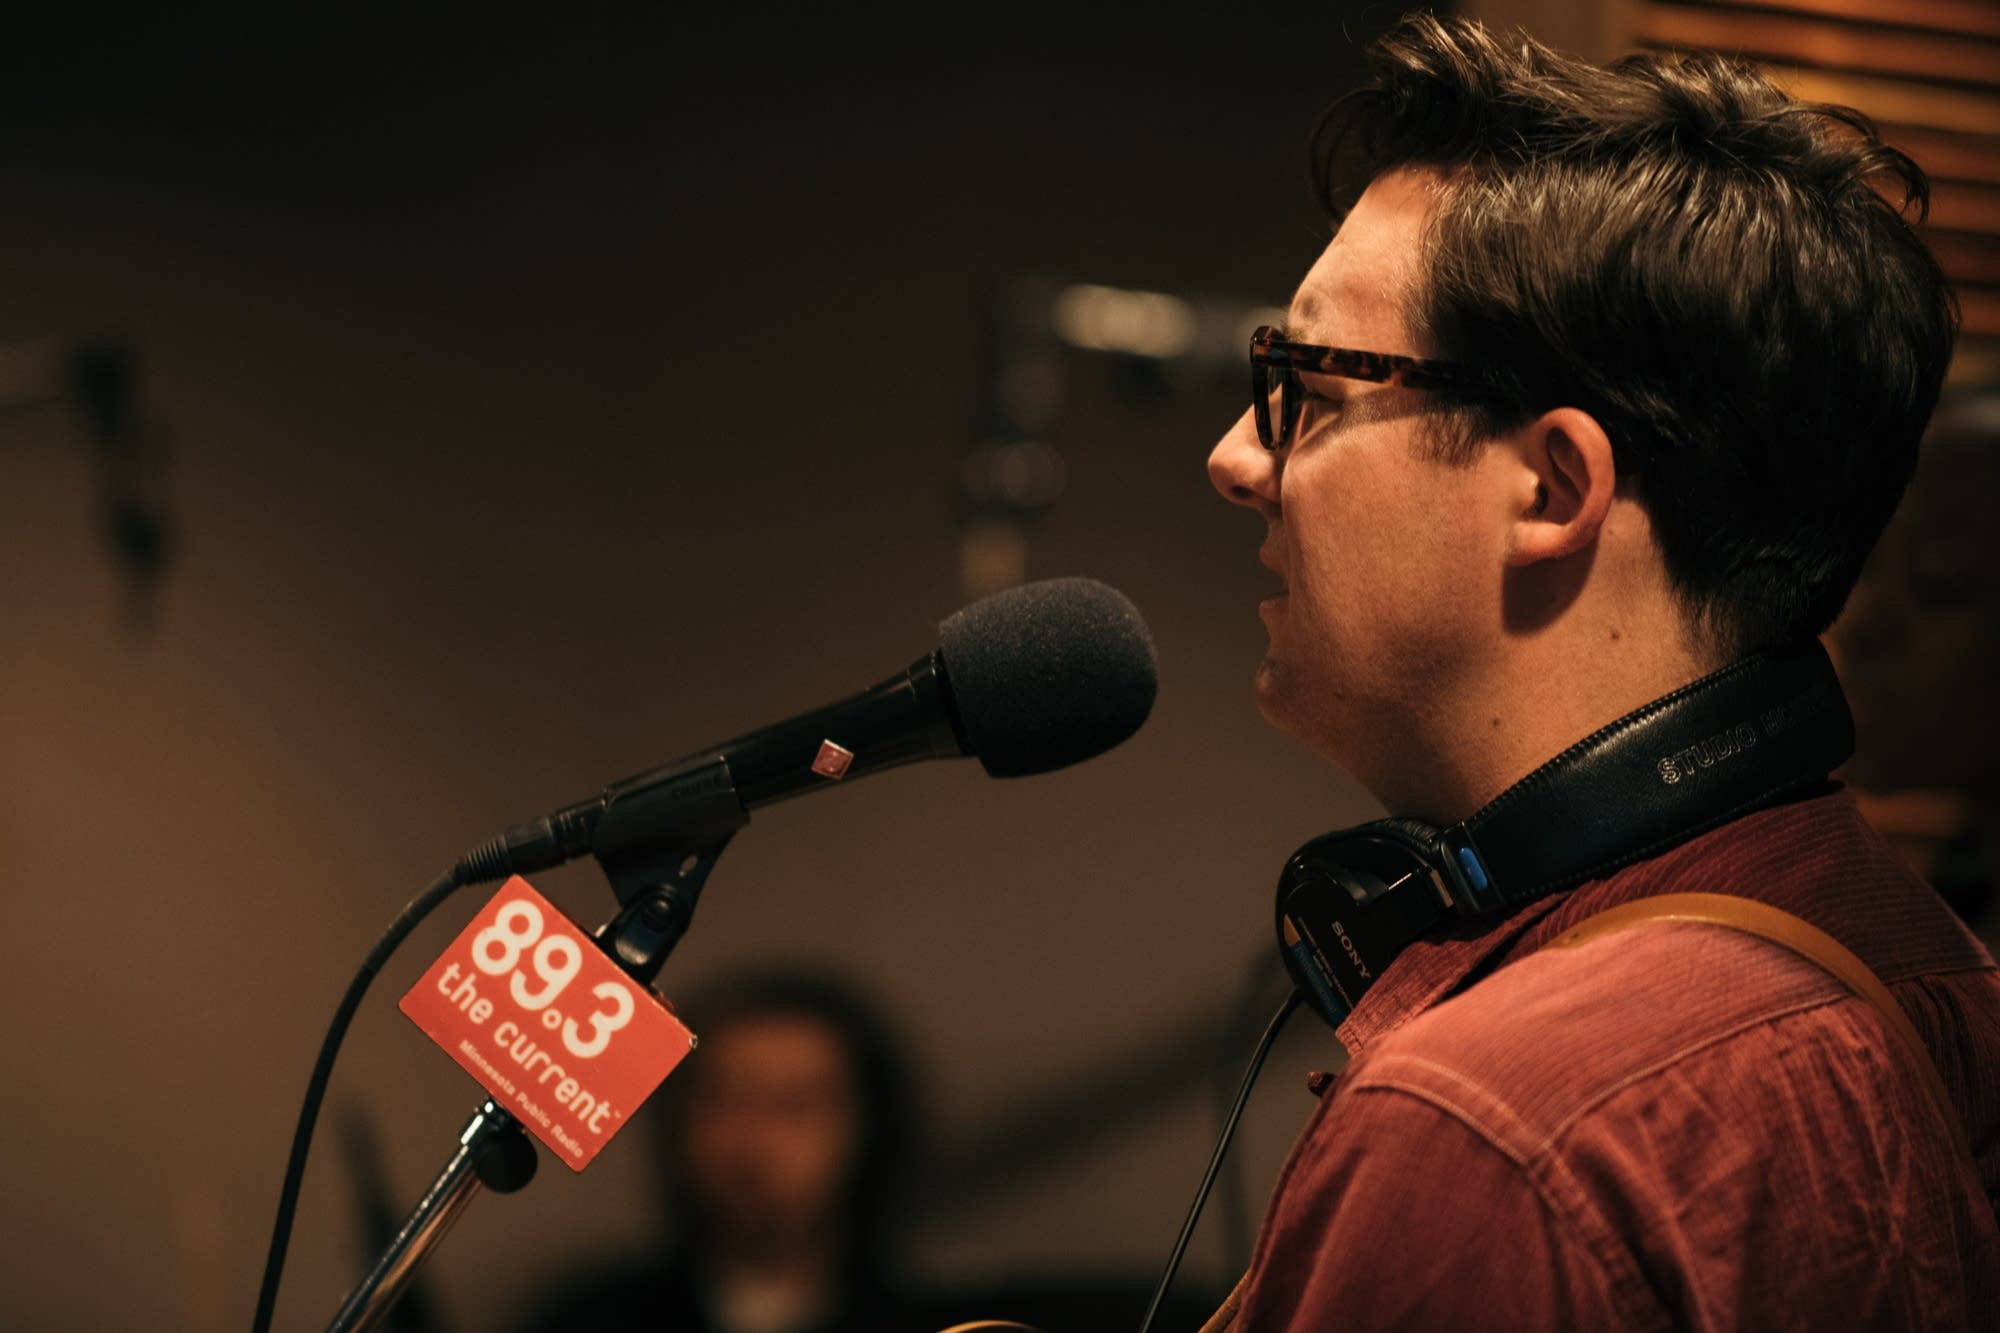 Nick Waterhouse performs in The Current studio